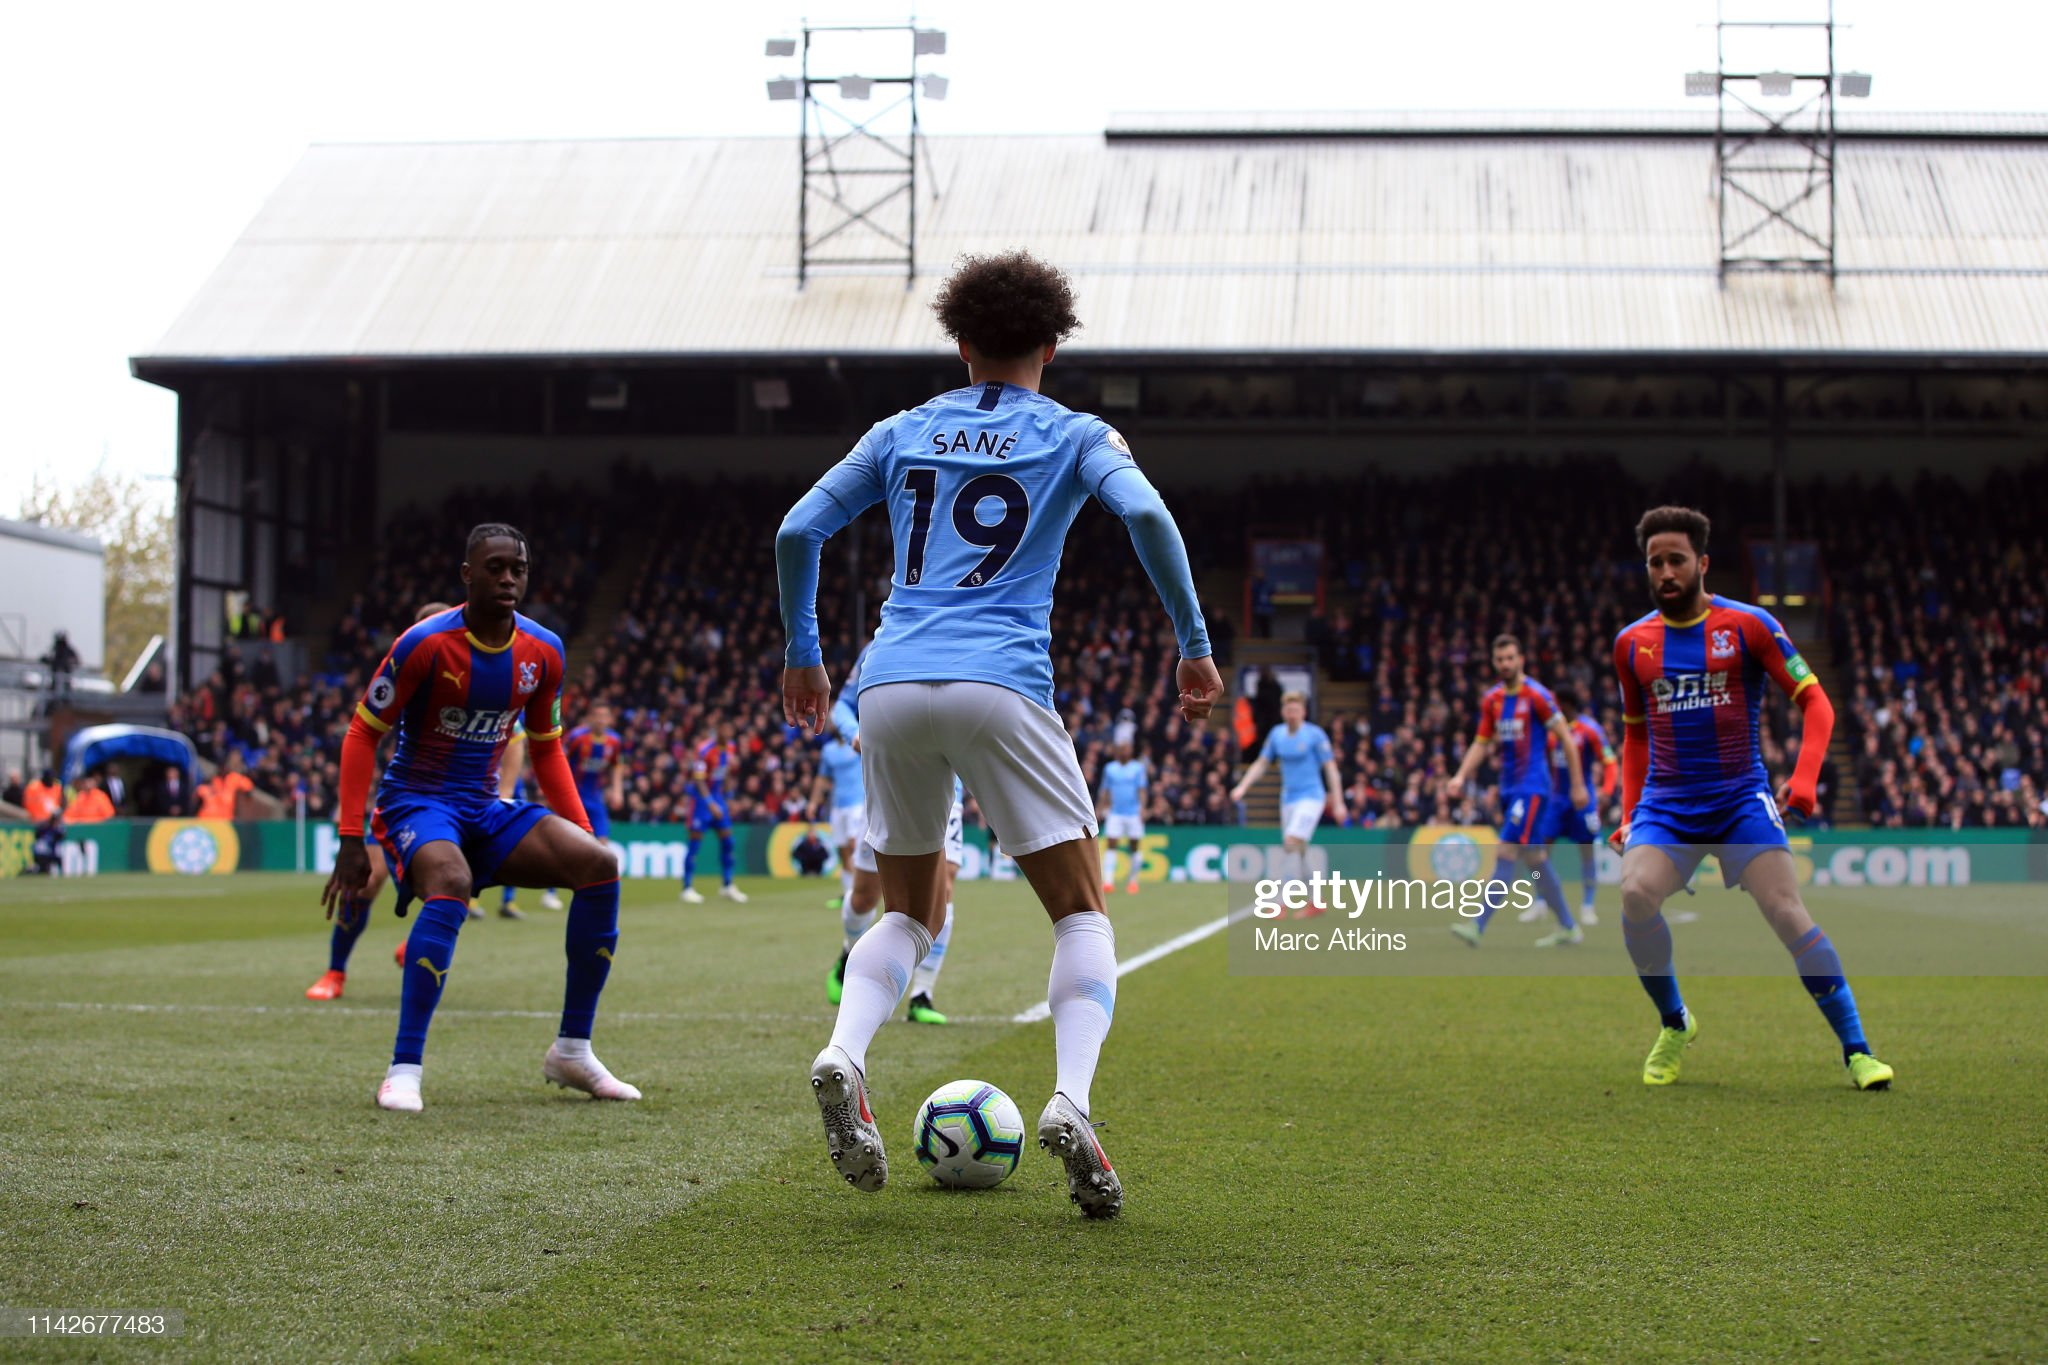 https://media.gettyimages.com/photos/leroy-sane-of-manchester-city-takes-on-the-palace-defenders-during-picture-id1142677483?s=2048x2048